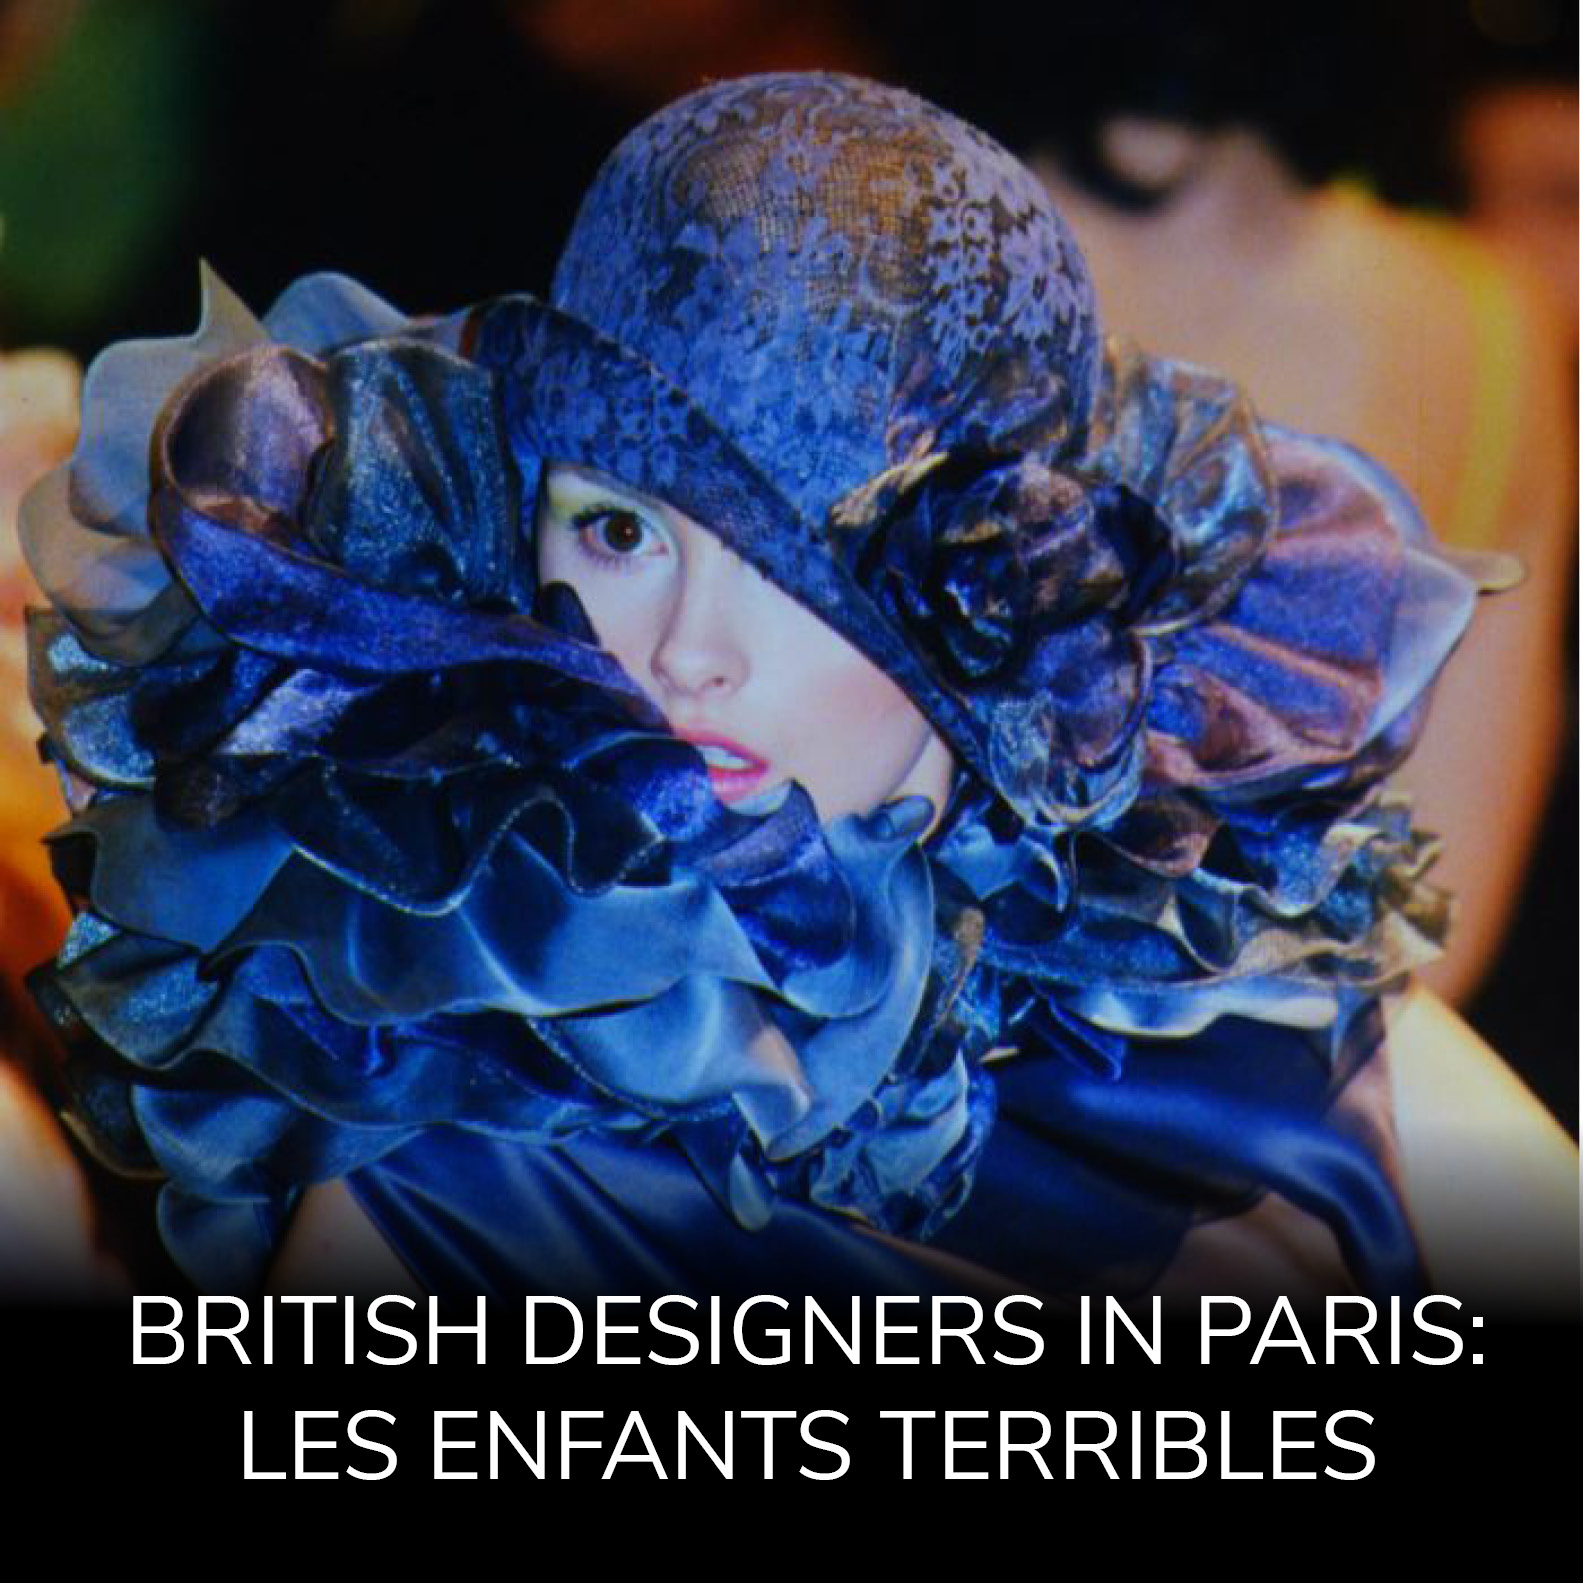 British Designers in Paris during the 1990s: Les enfants terribles de la Grande-Bretagne